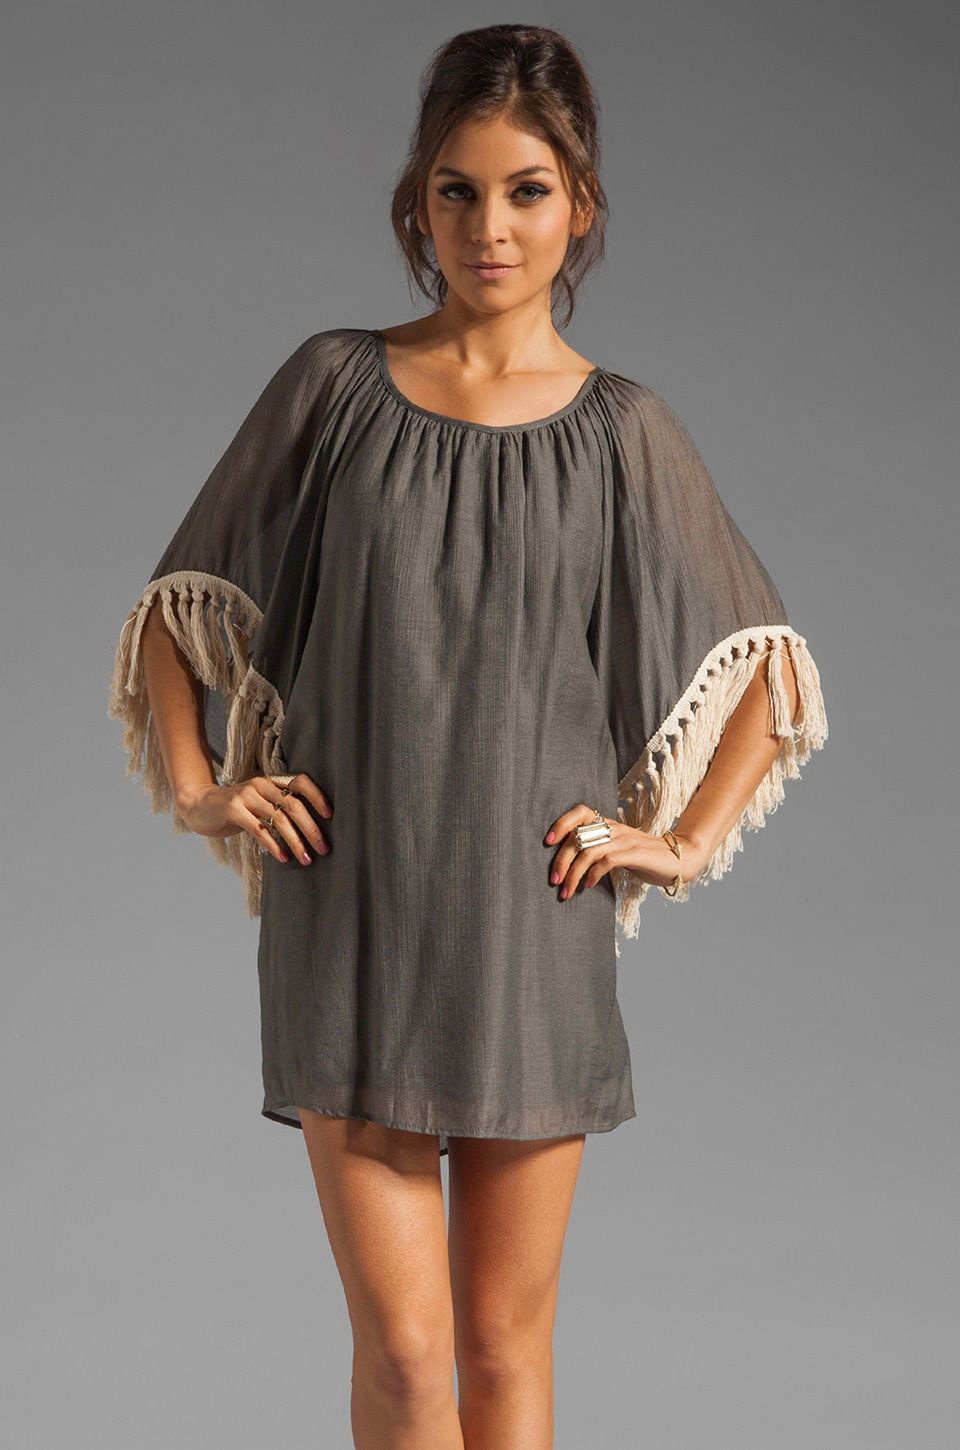 VAVA by Joy Han Amy Tassel Dress in Charcoal